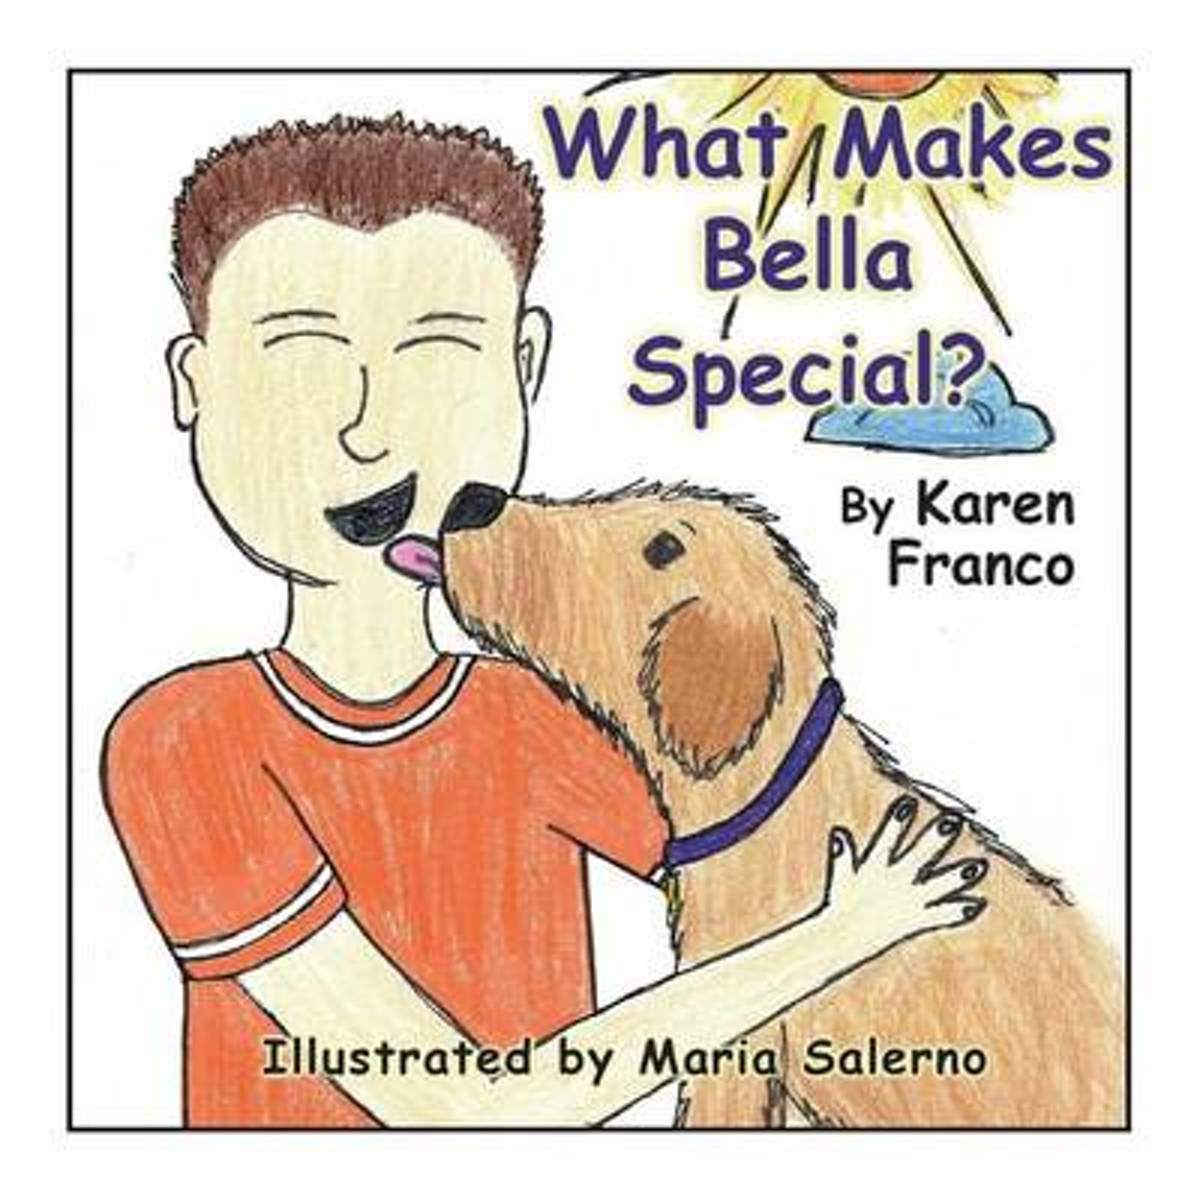 What Makes Bella Special